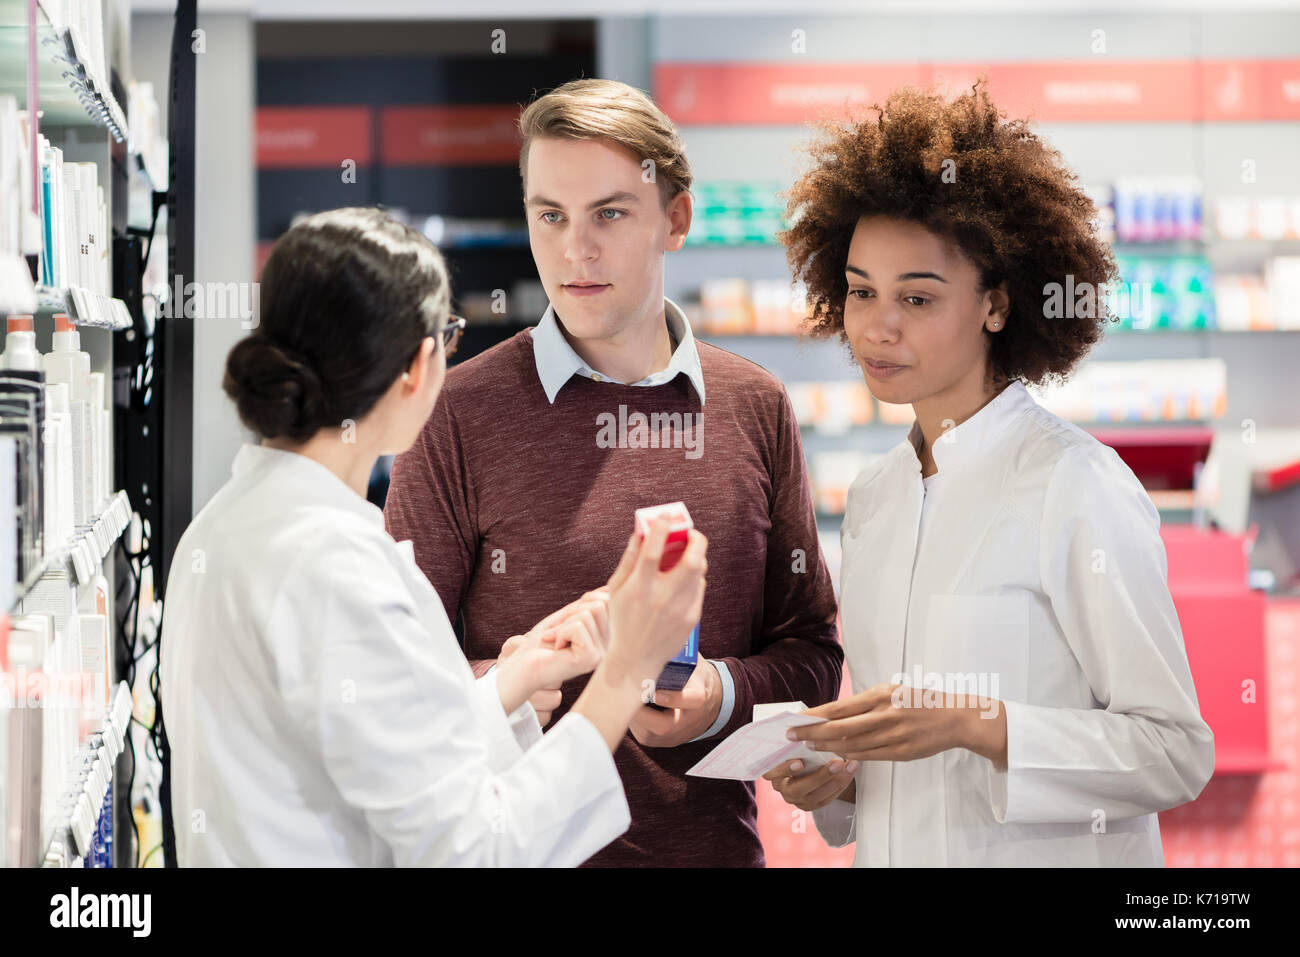 Young man asking for opinion from pharmacists regarding prescrib - Stock Image